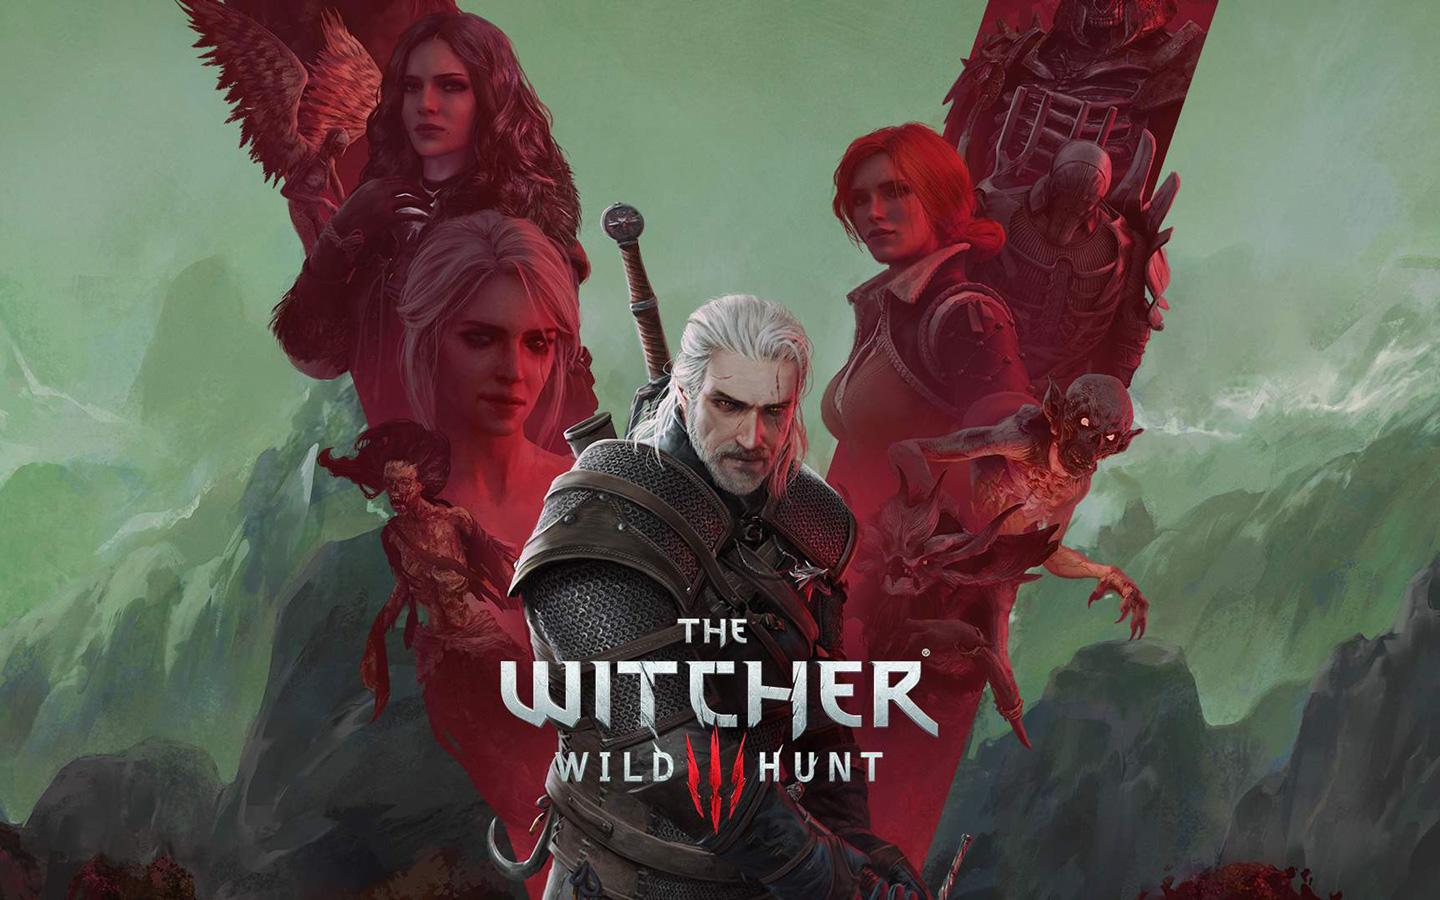 Free The Witcher 3 Wallpaper in 1440x900